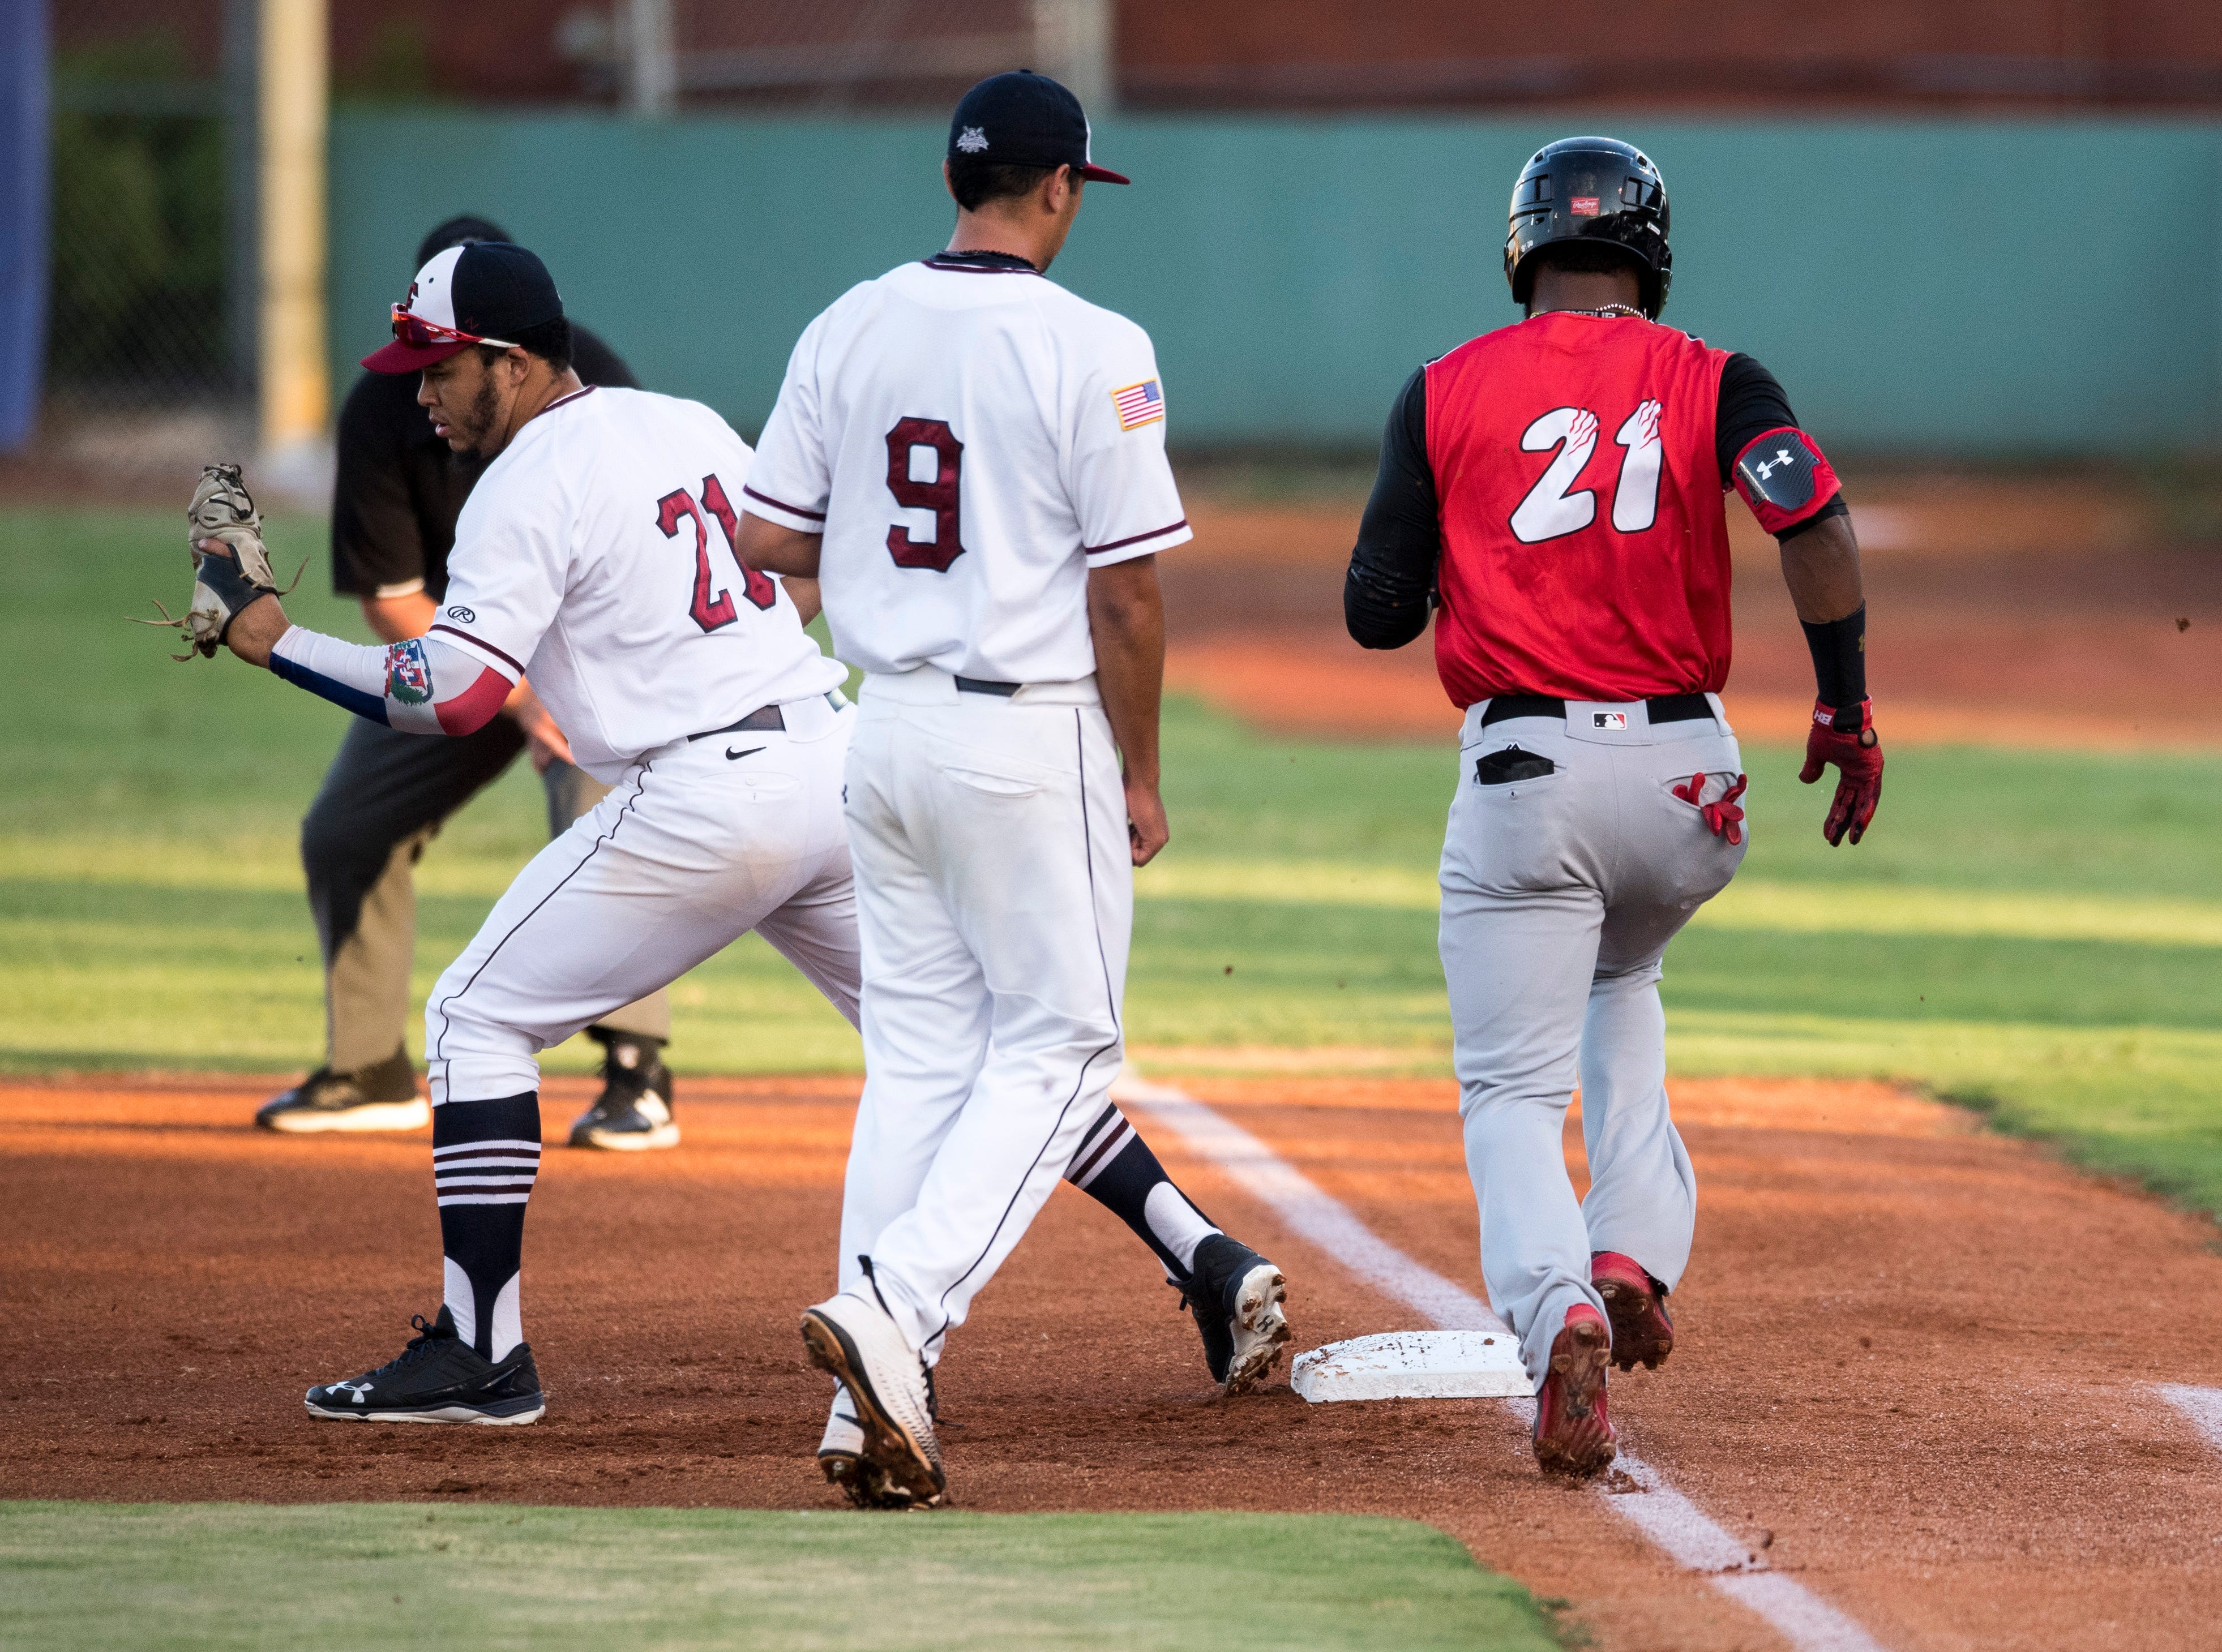 Evansville's Carlos Castro (21) outs Washington's Reydel Medina (21) during game one of the Frontier League Division Series at Bosse Field against the Washington Wild Things Tuesday, September 4, 2018.